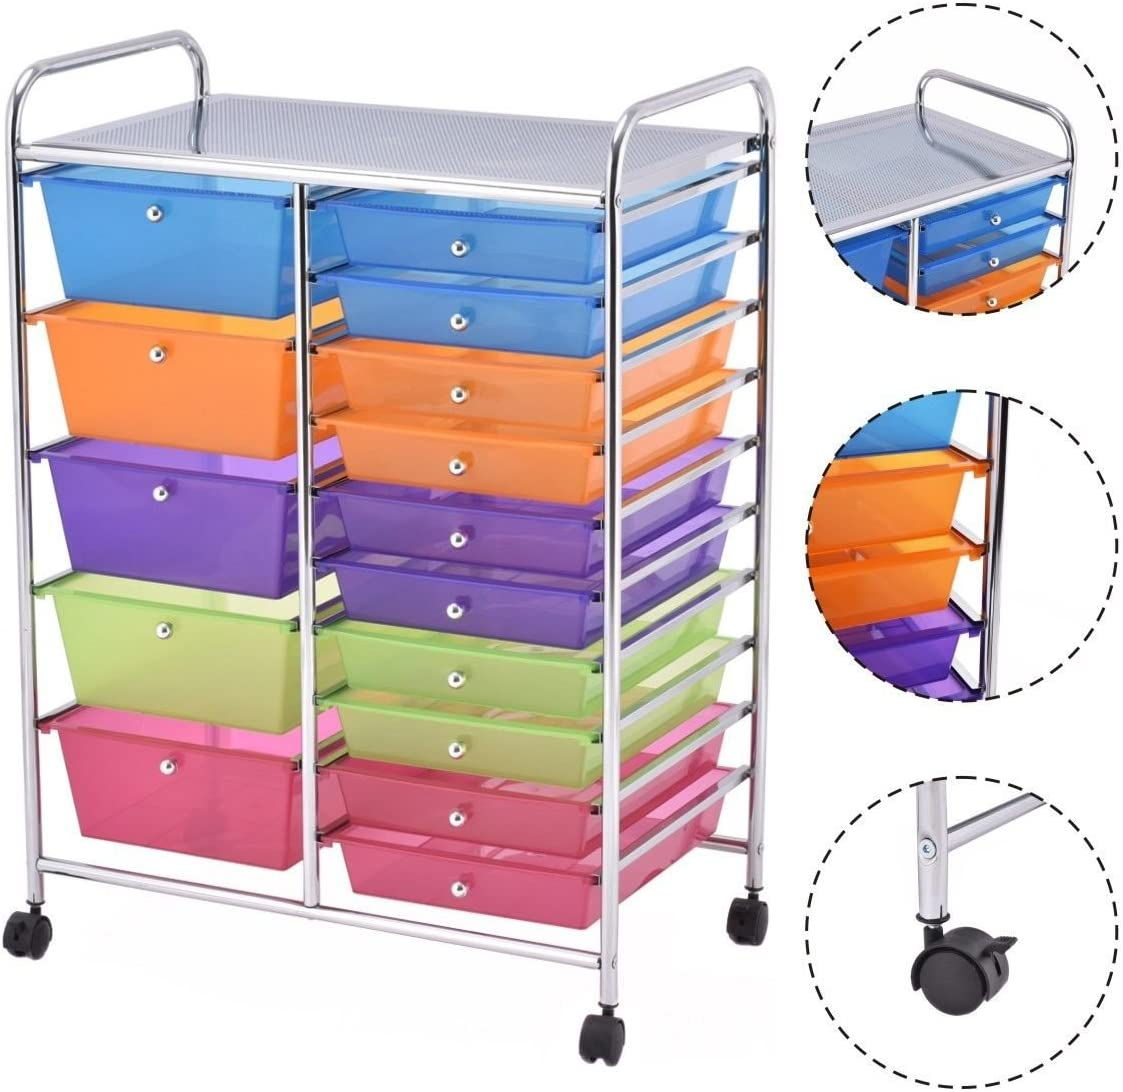 Home Office School Storage Cart Paper Scrapbook White Rolling Drawer Cart for Tools TUFFIOM 15-Drawer Organizer Cart